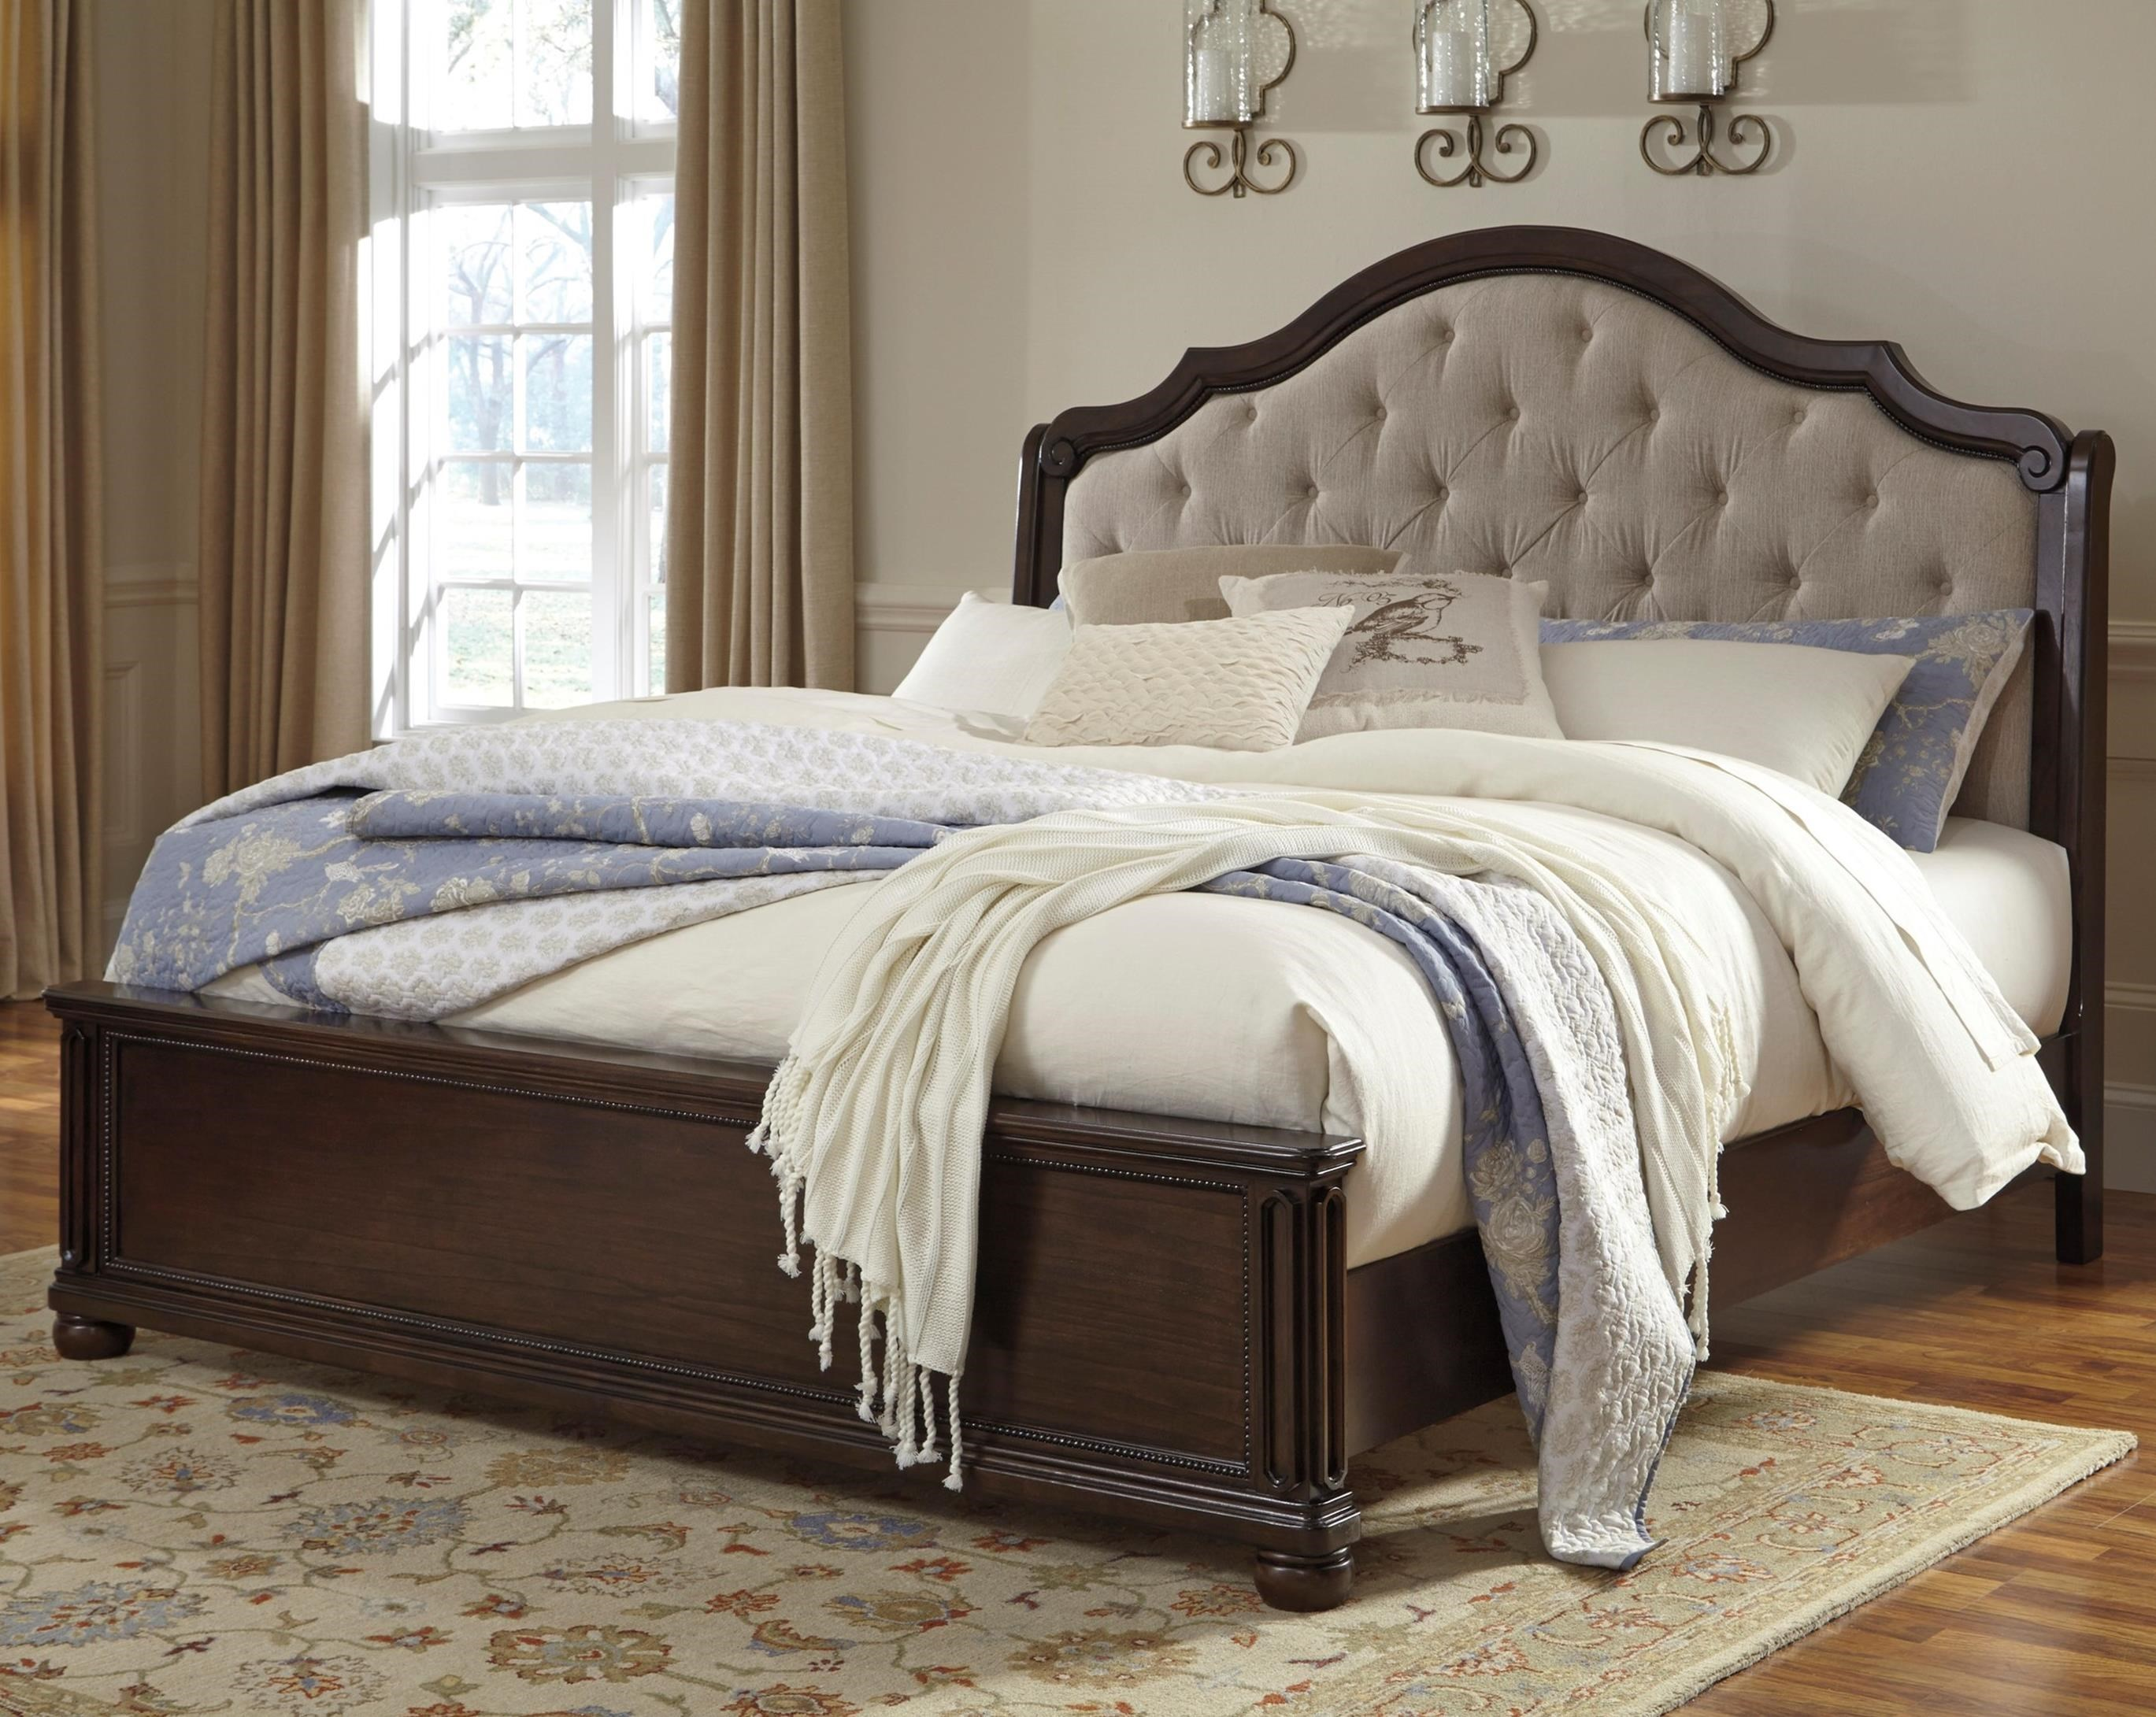 Signature Design By Ashley Moluxy King Bed With Upholstered Sleigh Headboard Wayside Furniture